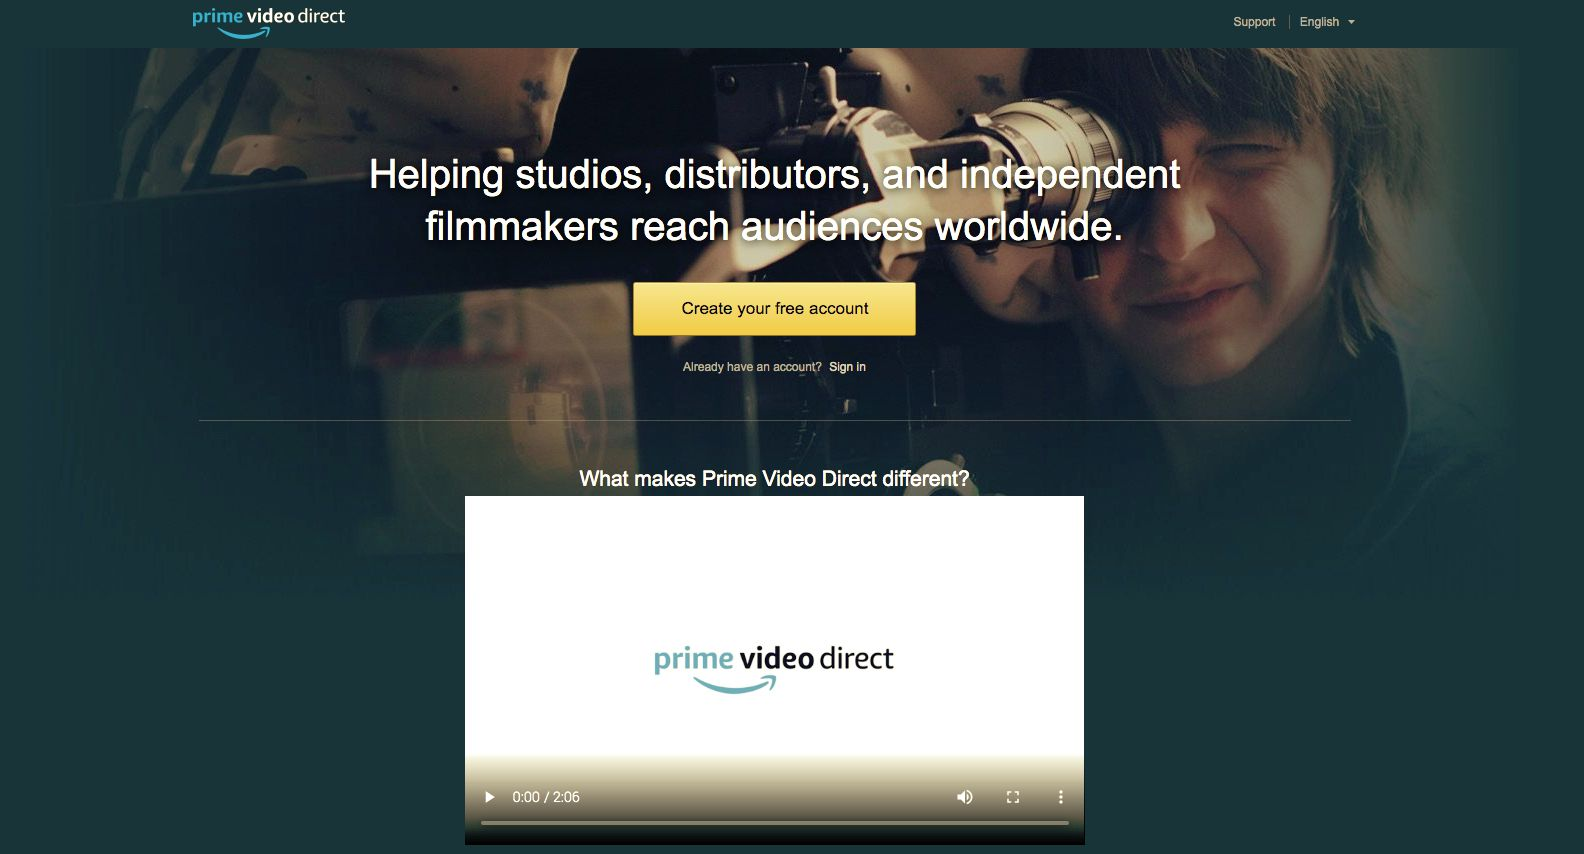 Prime Video Direct Home page